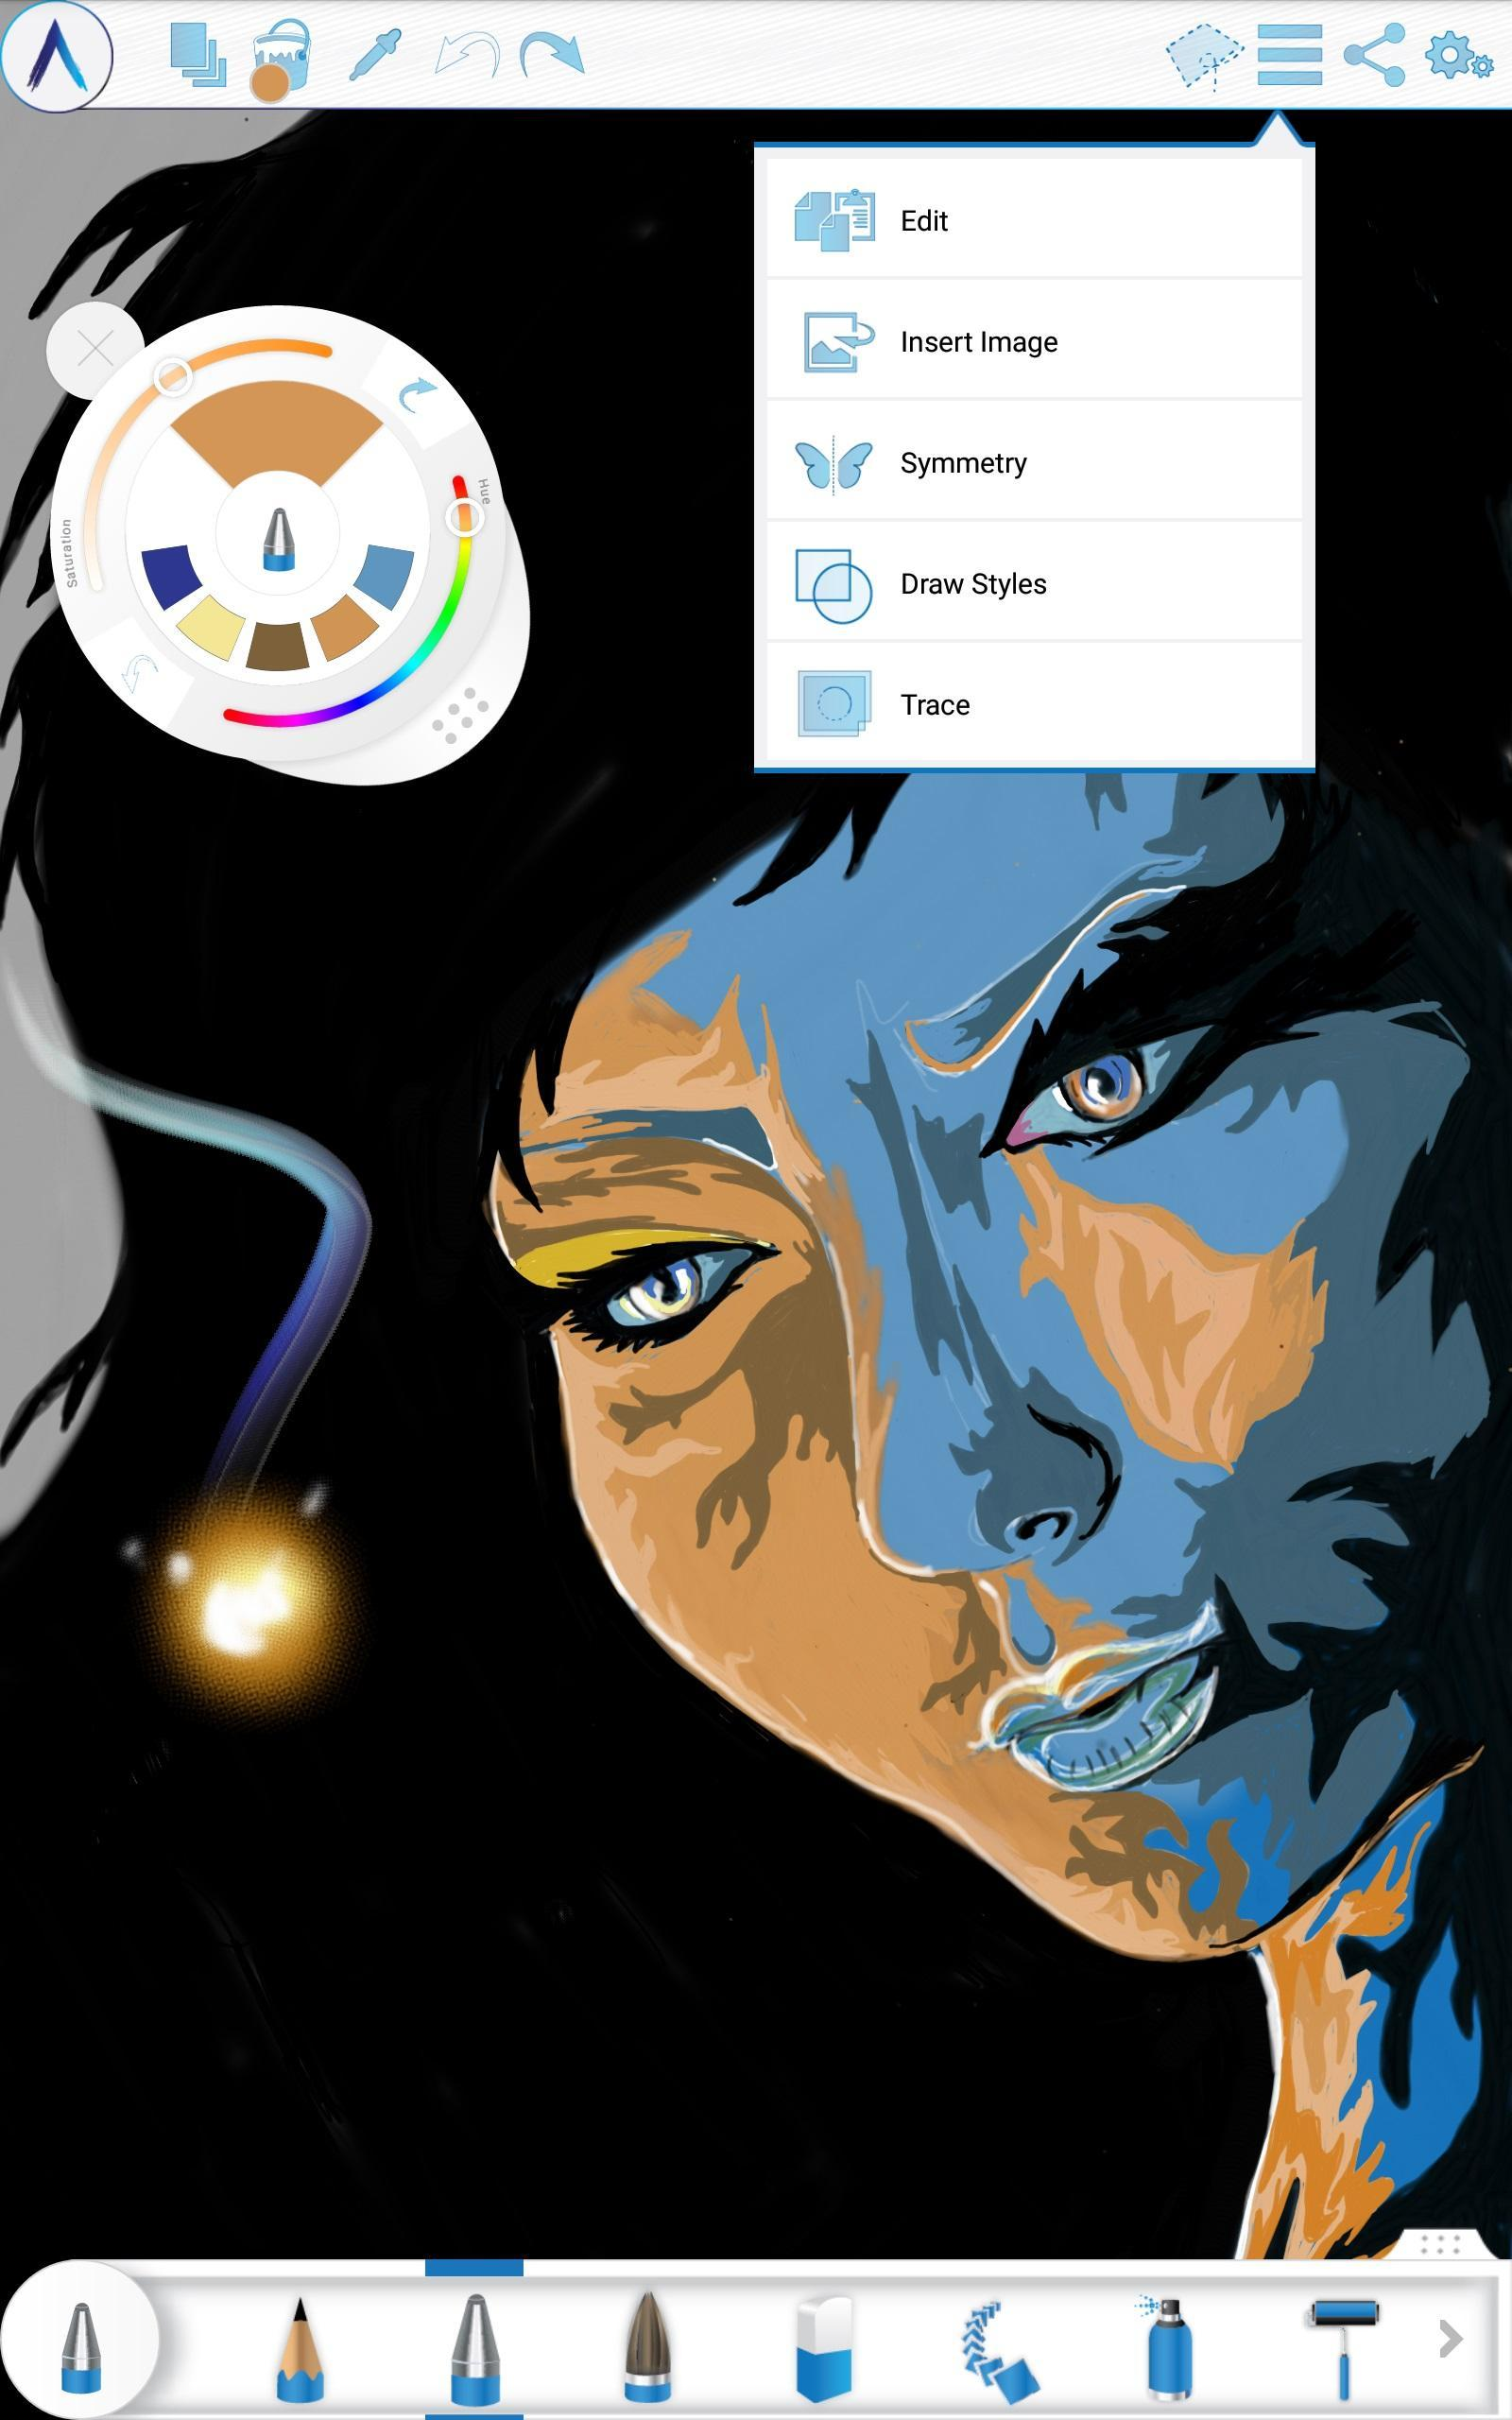 Artecture Draw, Sketch, Paint 5.2.0.4 Screenshot 20